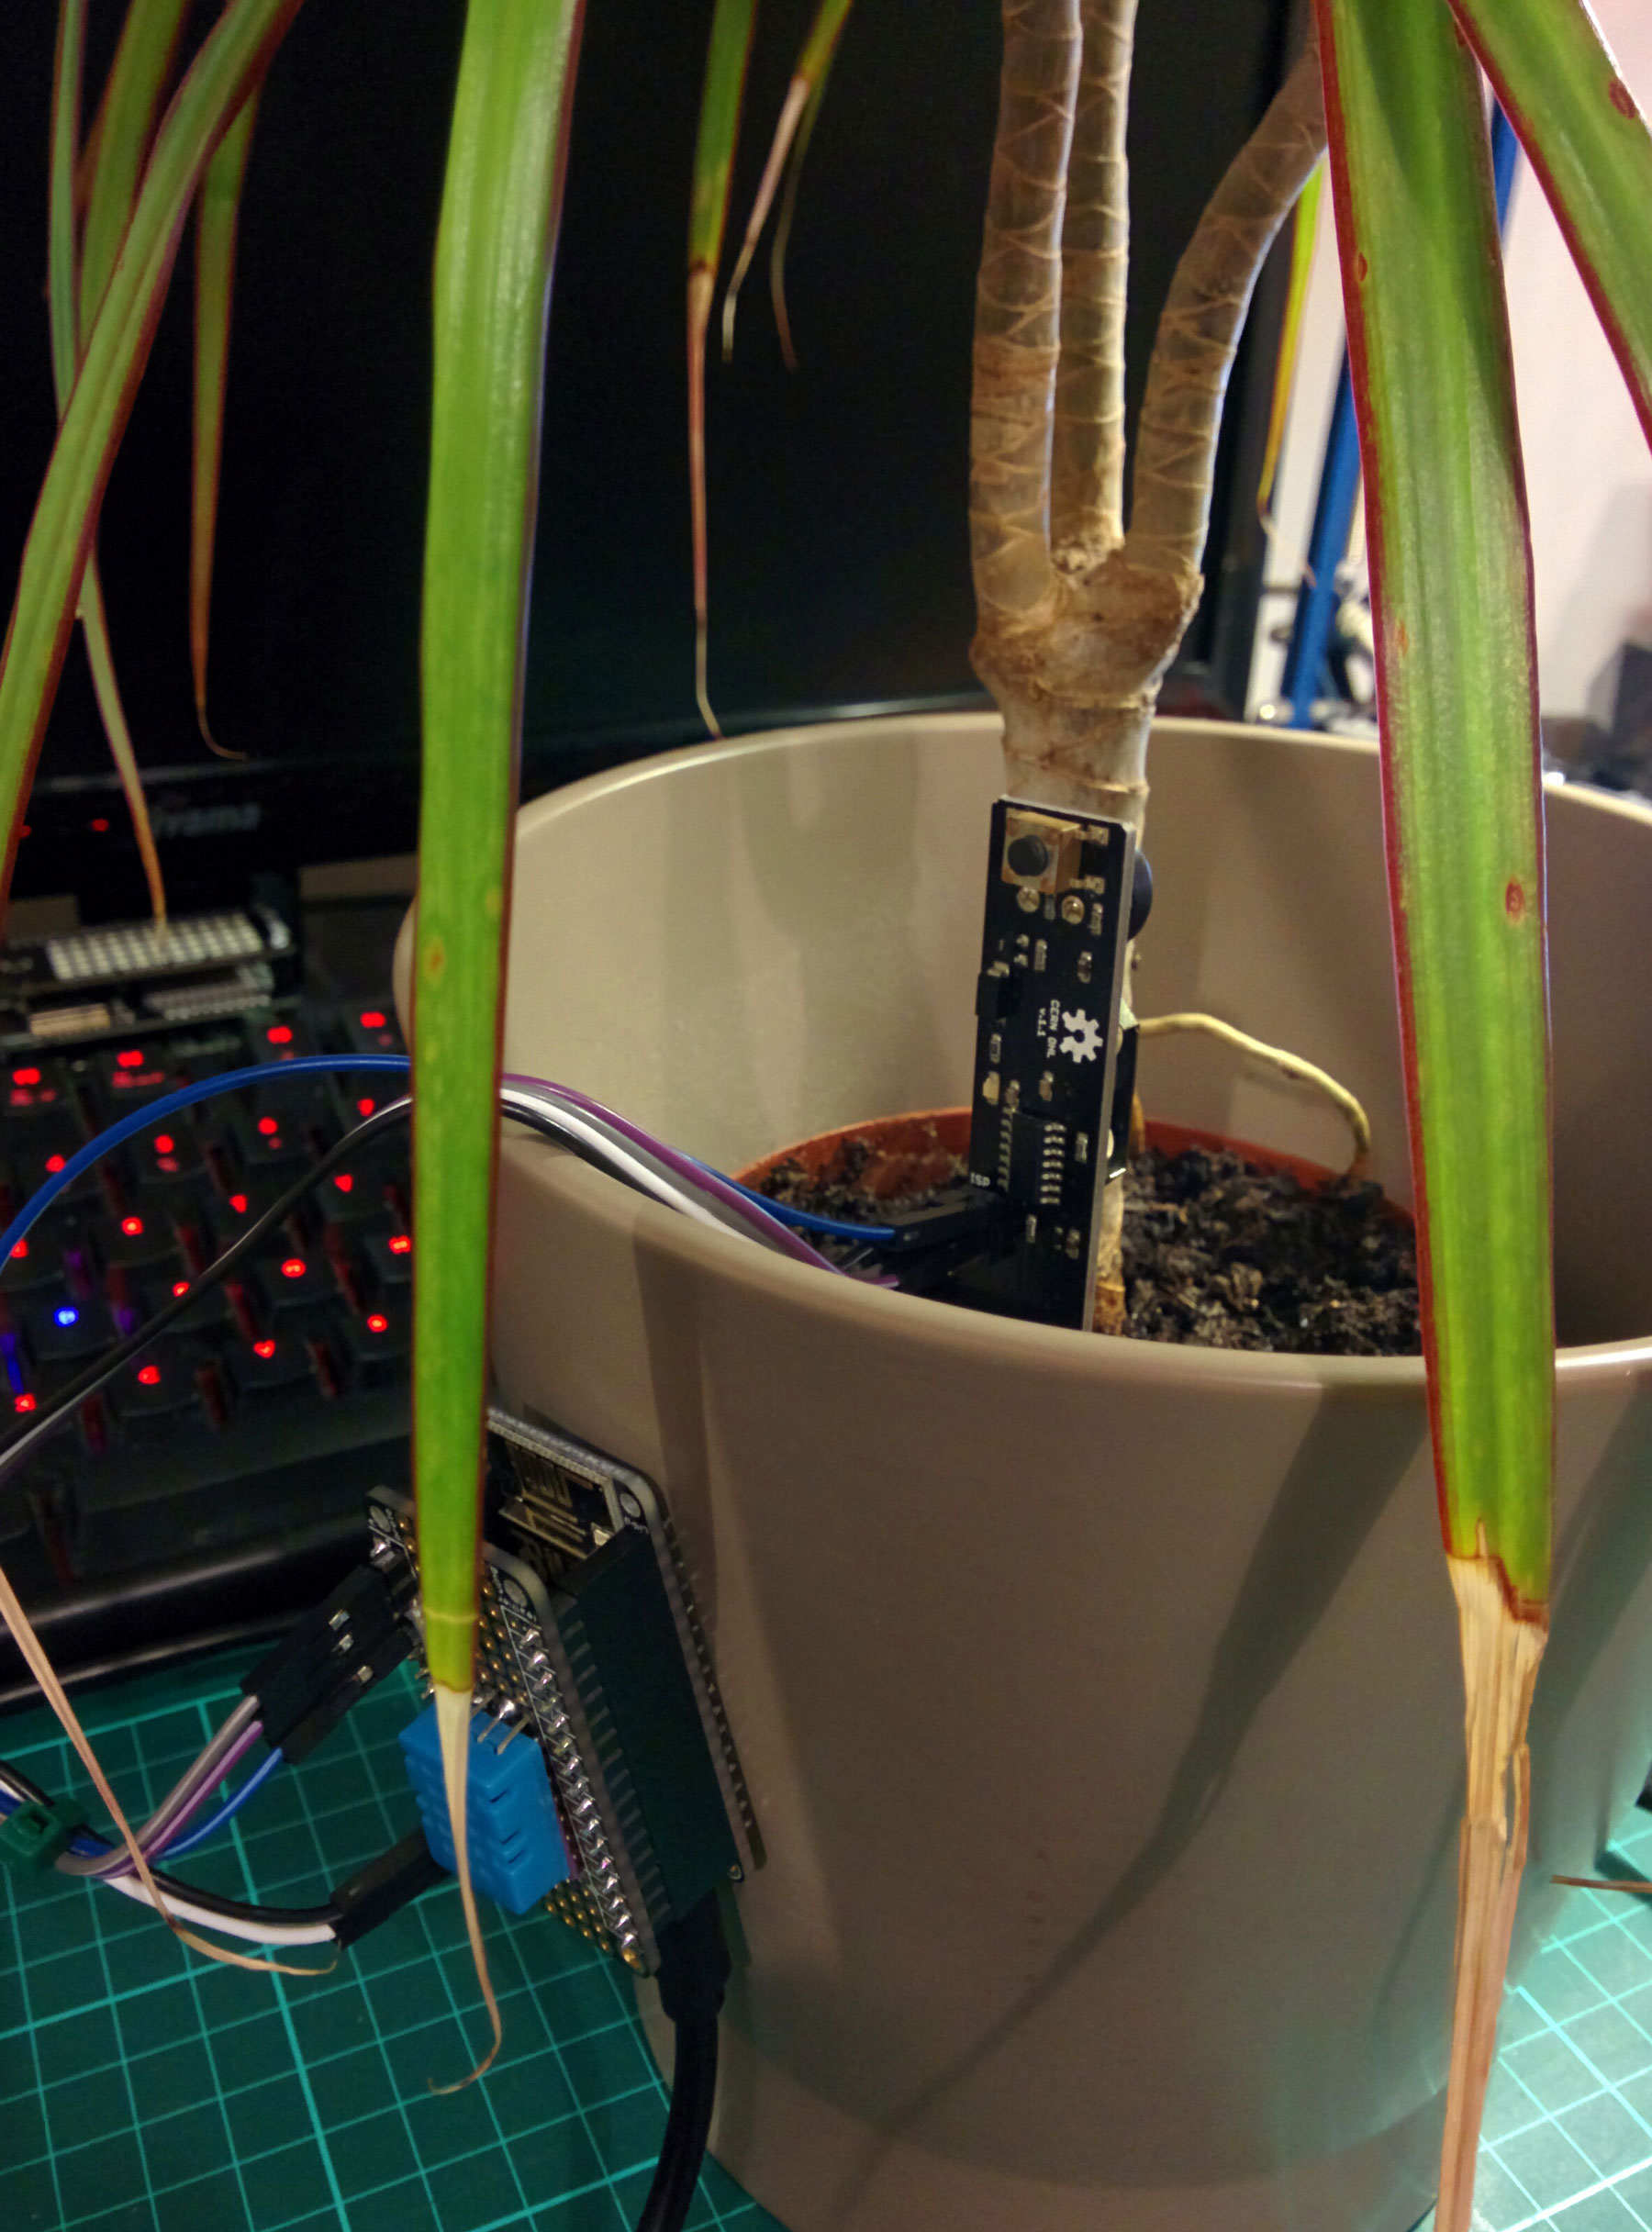 Monitoring houseplants with MQTT and the ESP8266